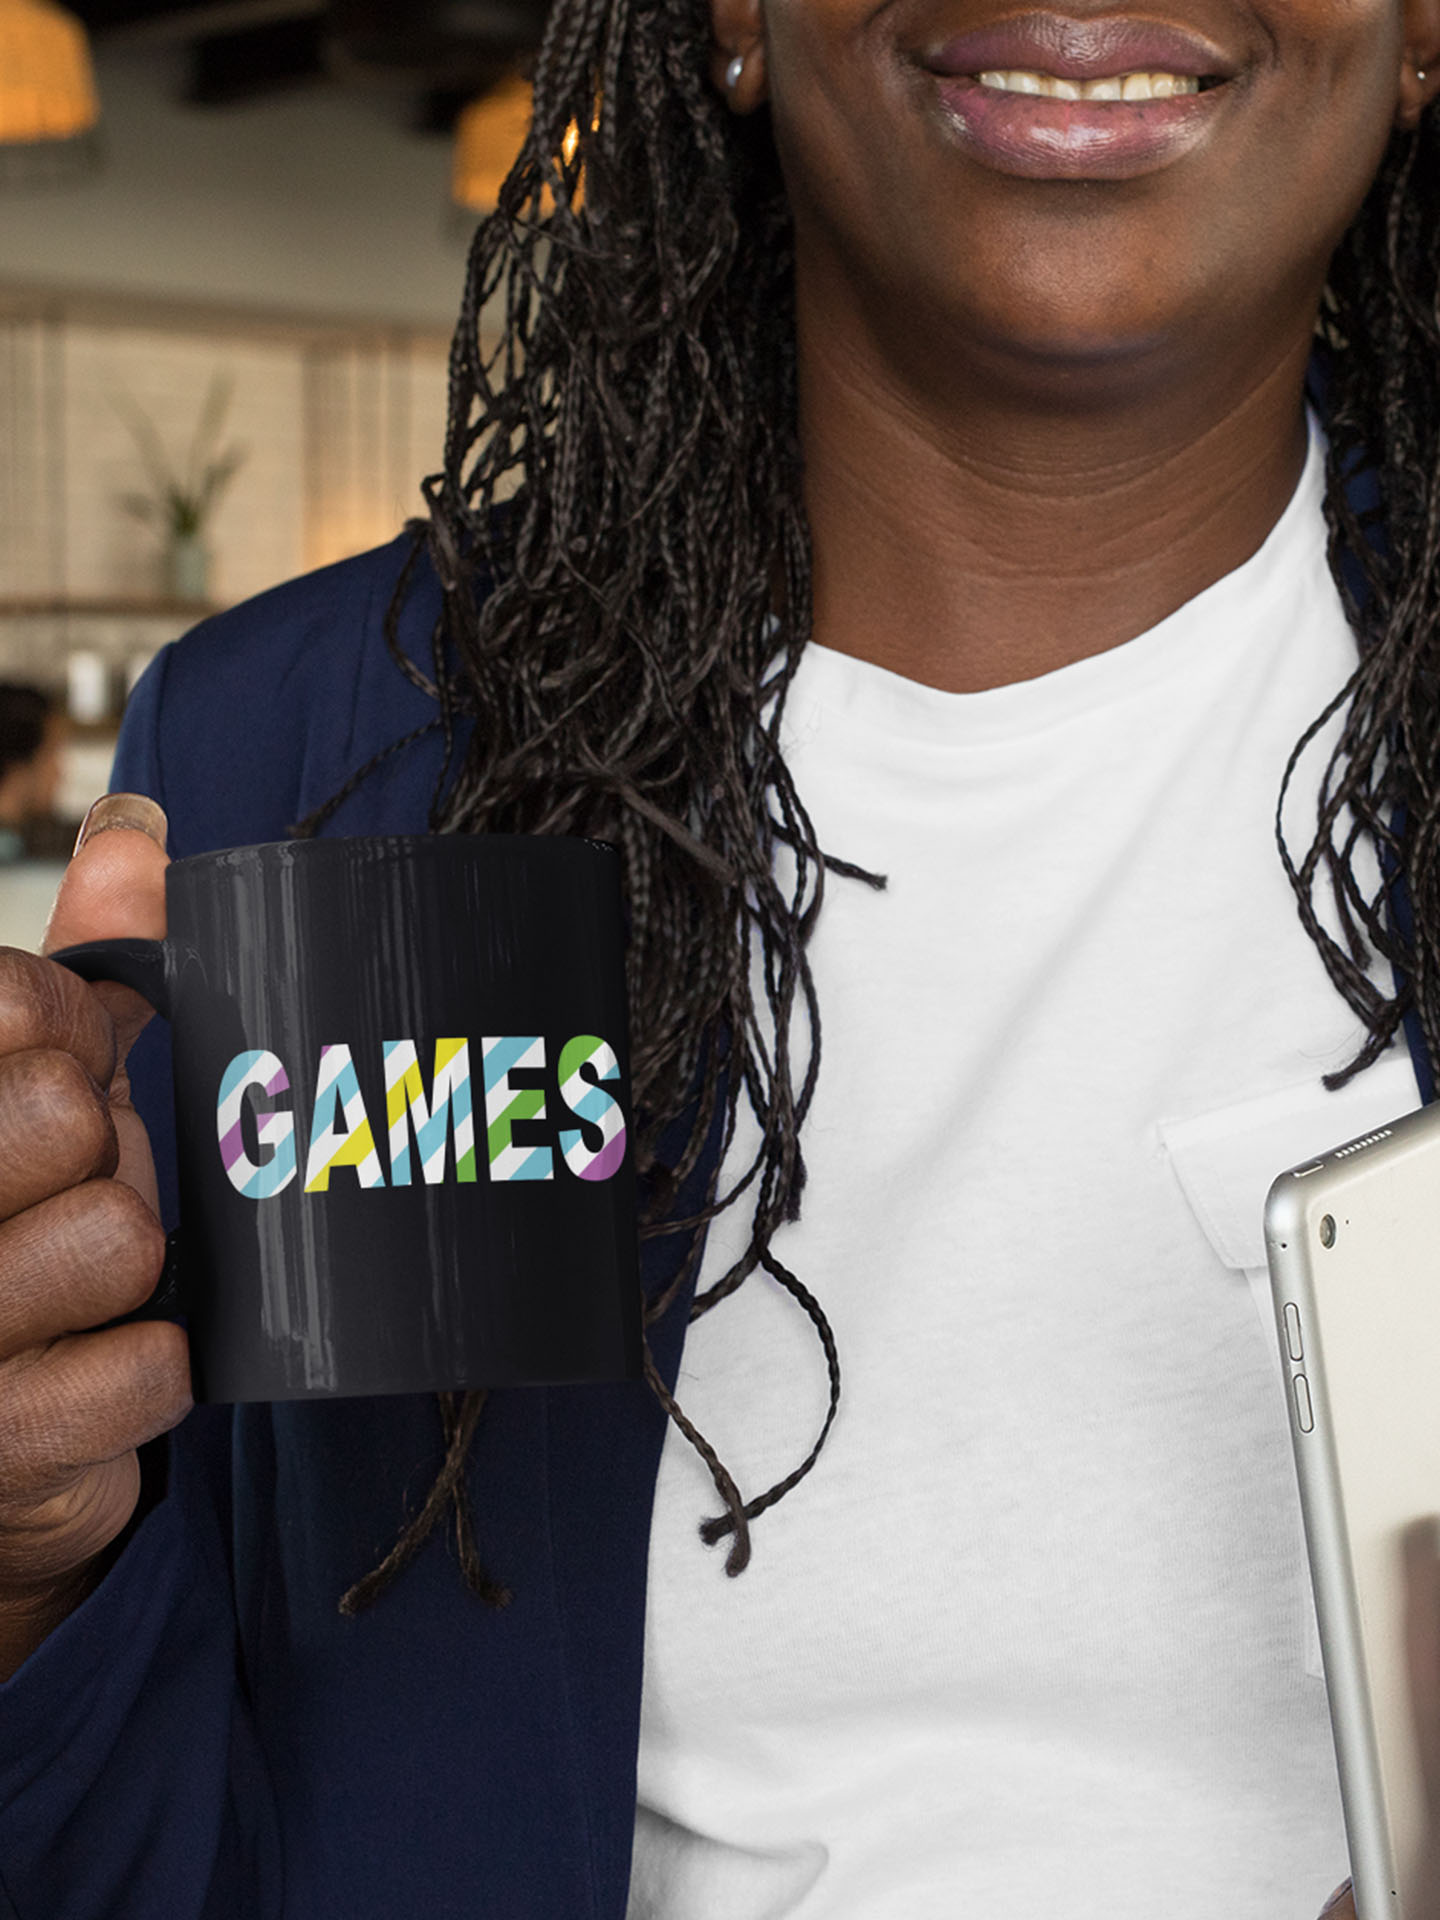 Spredshirt-Prints-Trailfire_0042_cropped-face-mockup-featuring-a-businesswoman-holding-an-11-oz-coffee-mug-32906